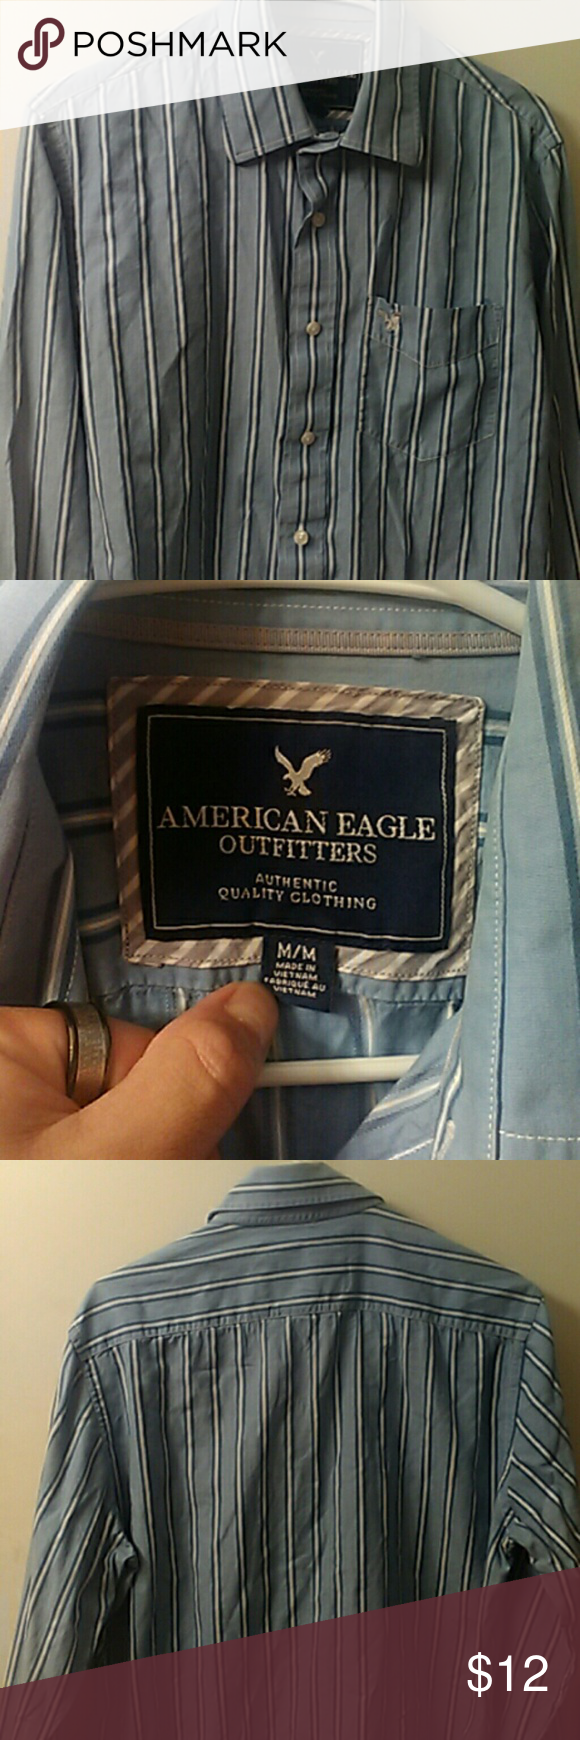 Mens American Eagle casual button down Color is light blue with dark blue and white stripes. Pocket on the front with a silver eagle logo. Condition is excellent excellent excellent. American Eagle Outfitters Shirts Casual Button Down Shirts